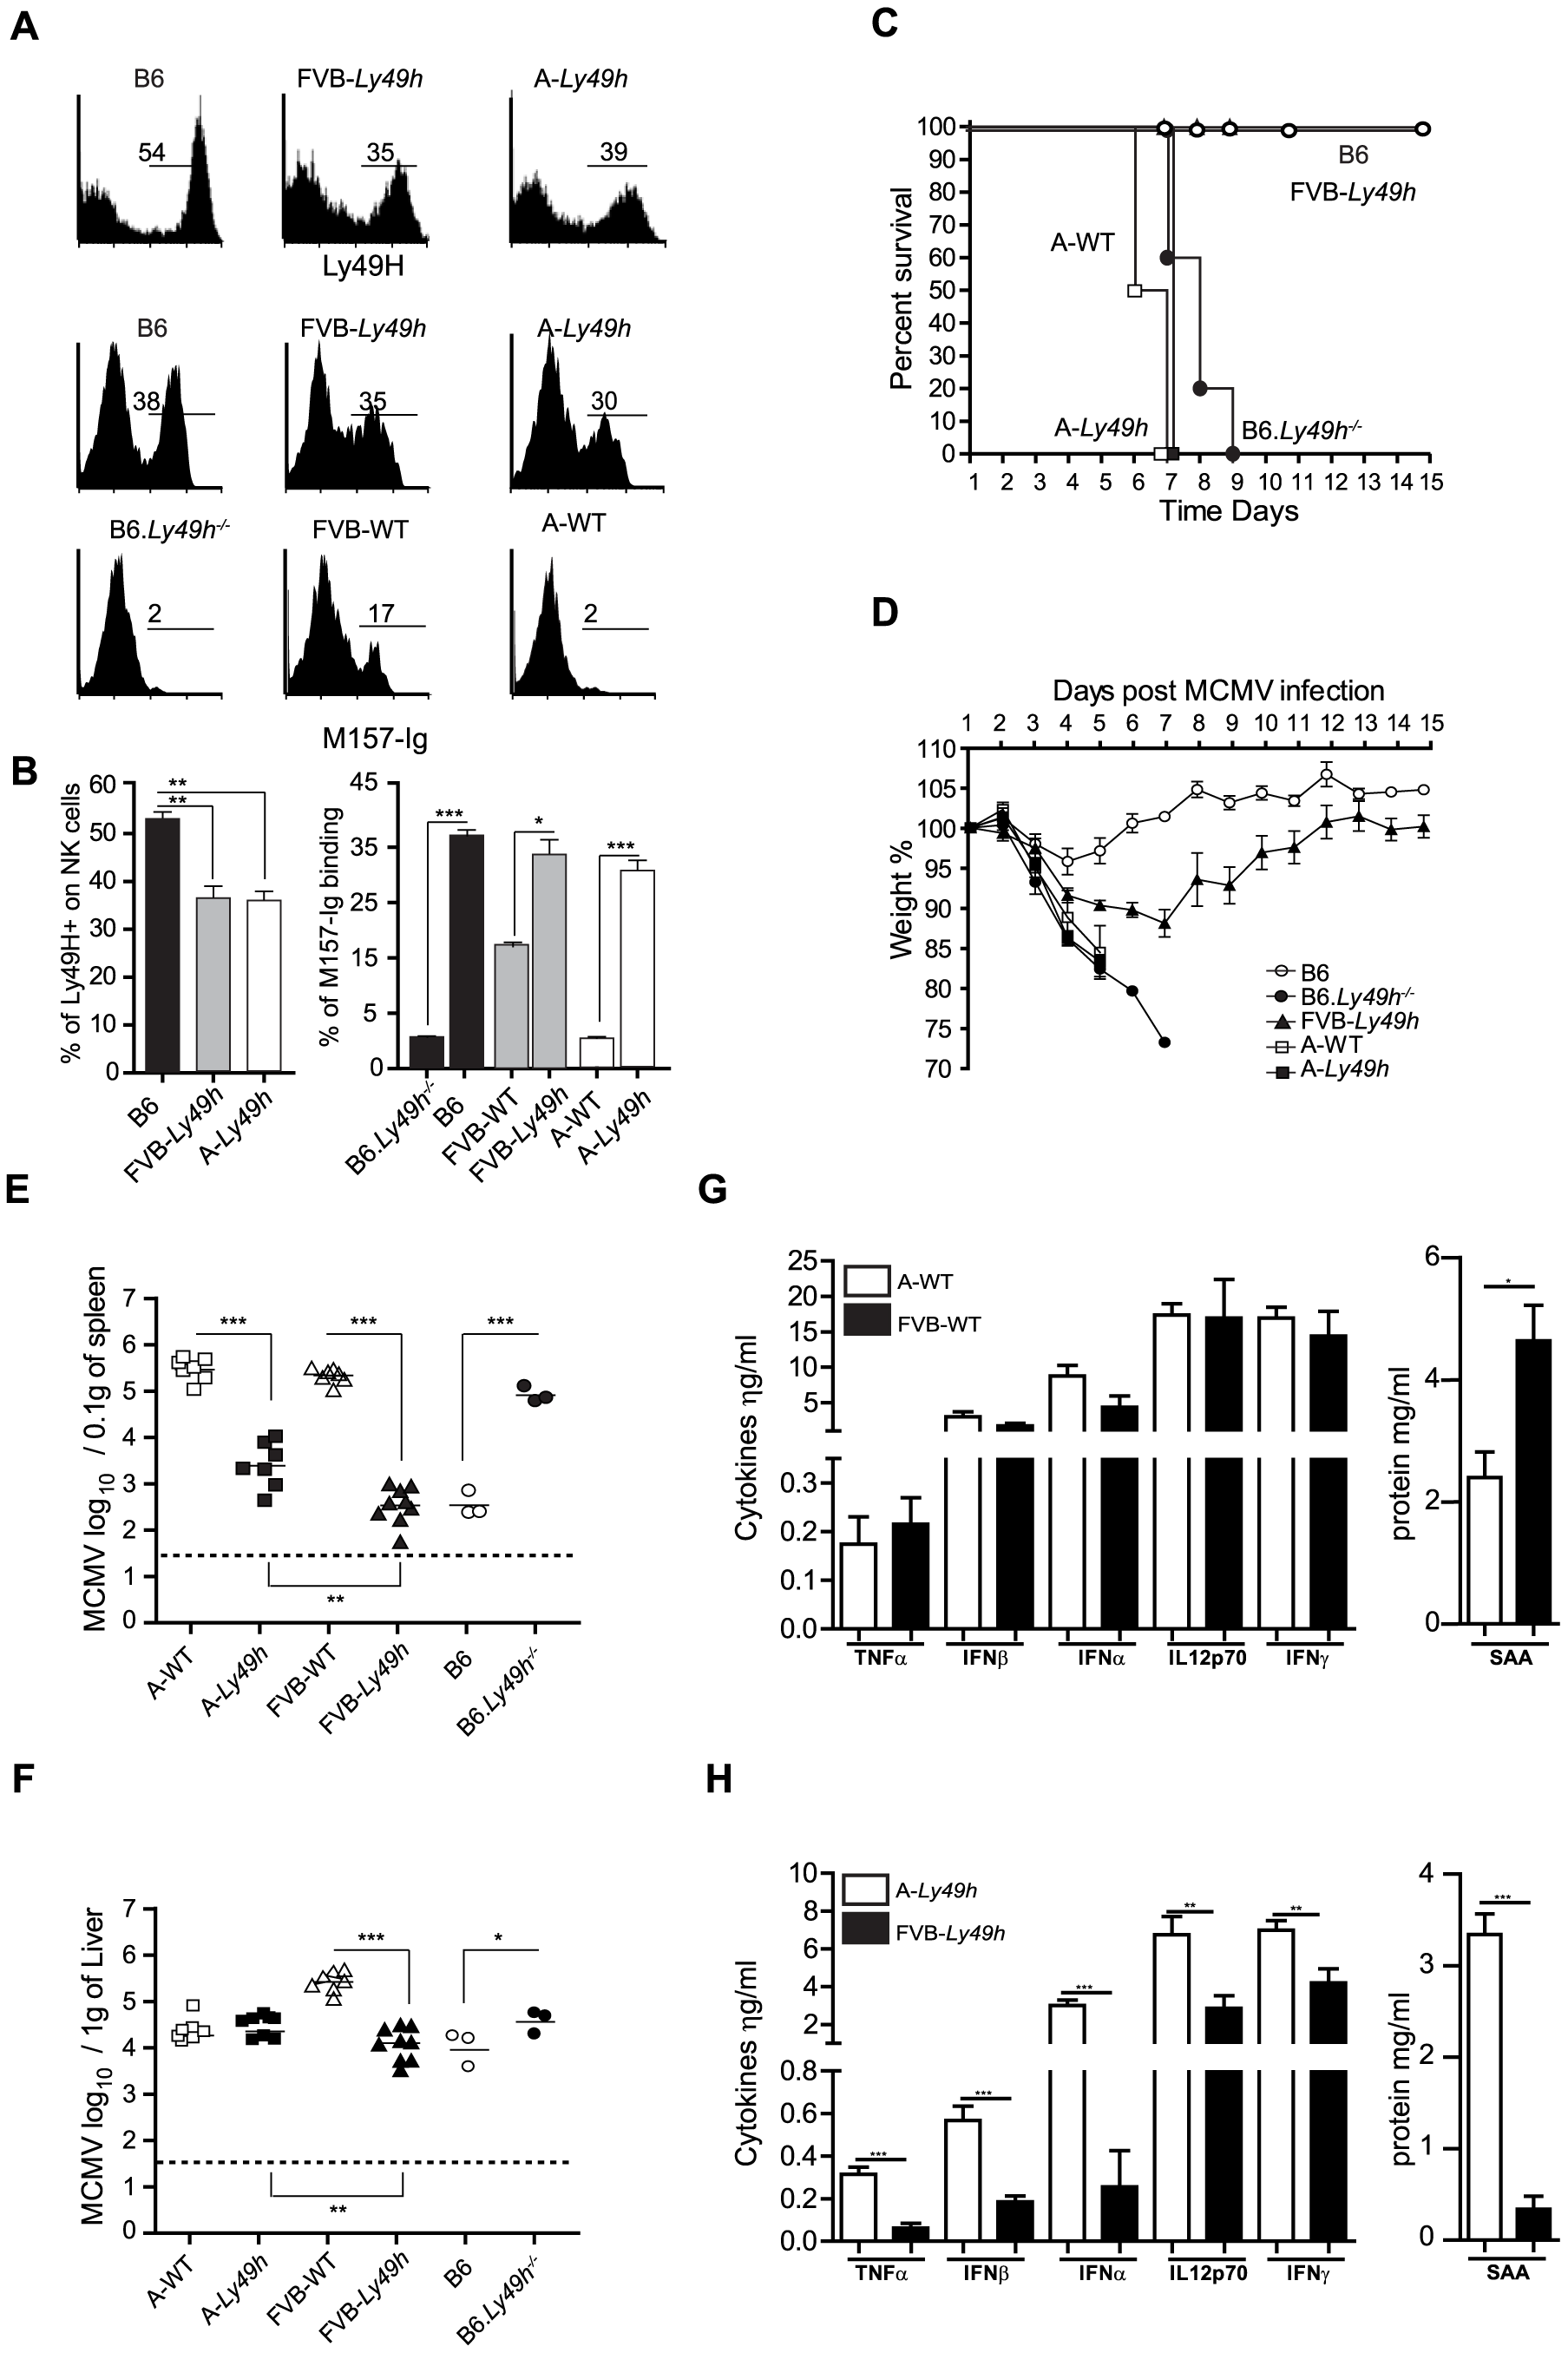 Ly49H expression by NK cells does not rescue A/J mice from lethal MCMV infection.